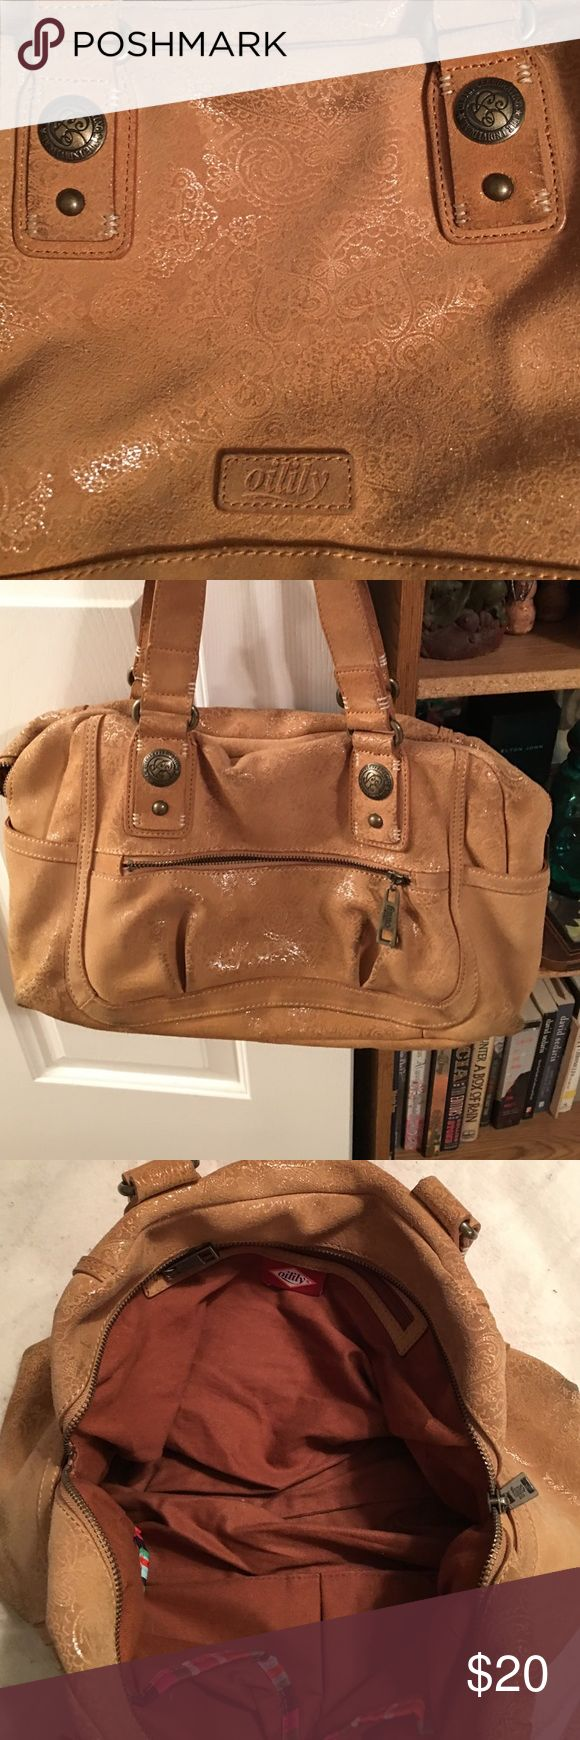 Oliily handbag This is a suede bag, it could use a cleaning but otherwise it's in great shape! Typical great product from a great company! Has inside zip pocket and 2 smaller pockets, key fob and a roomy interior. Oilily Bags Shoulder Bags